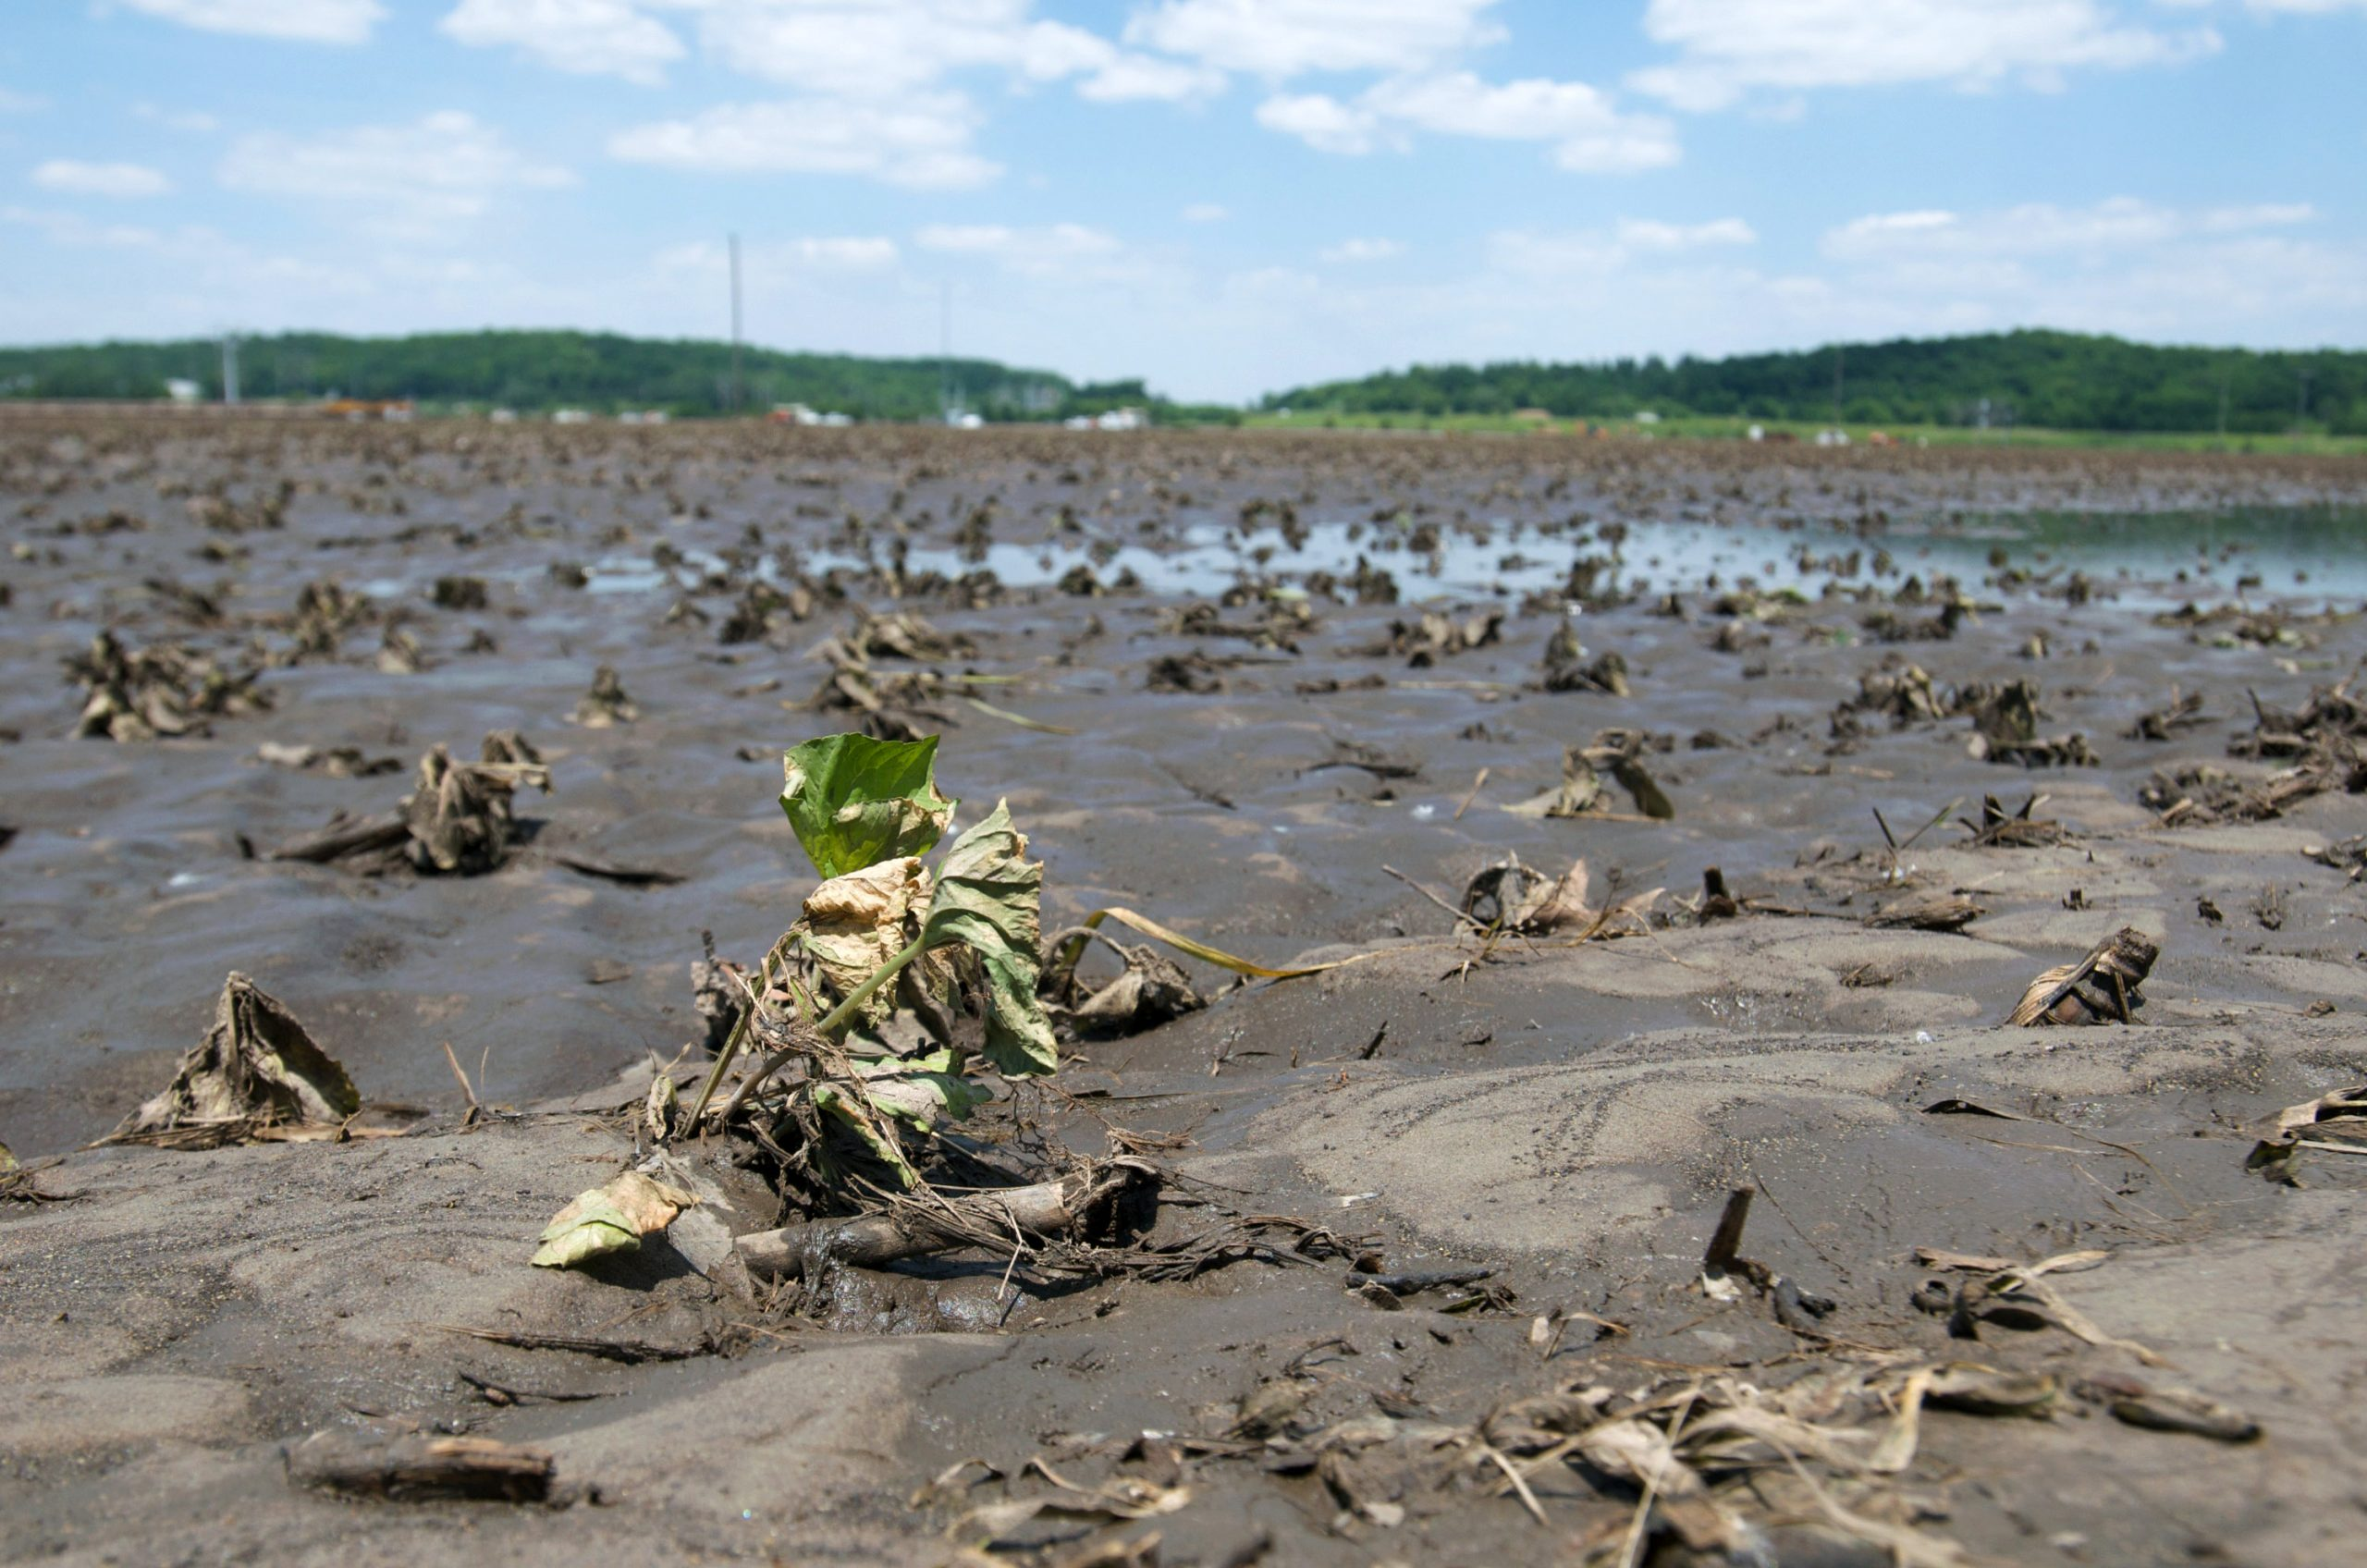 Flood damaged soybeans are seen on a farm on June 18, 2008 in Cedar Rapids, Iowa. (Photo by David Greedy/Getty Images)